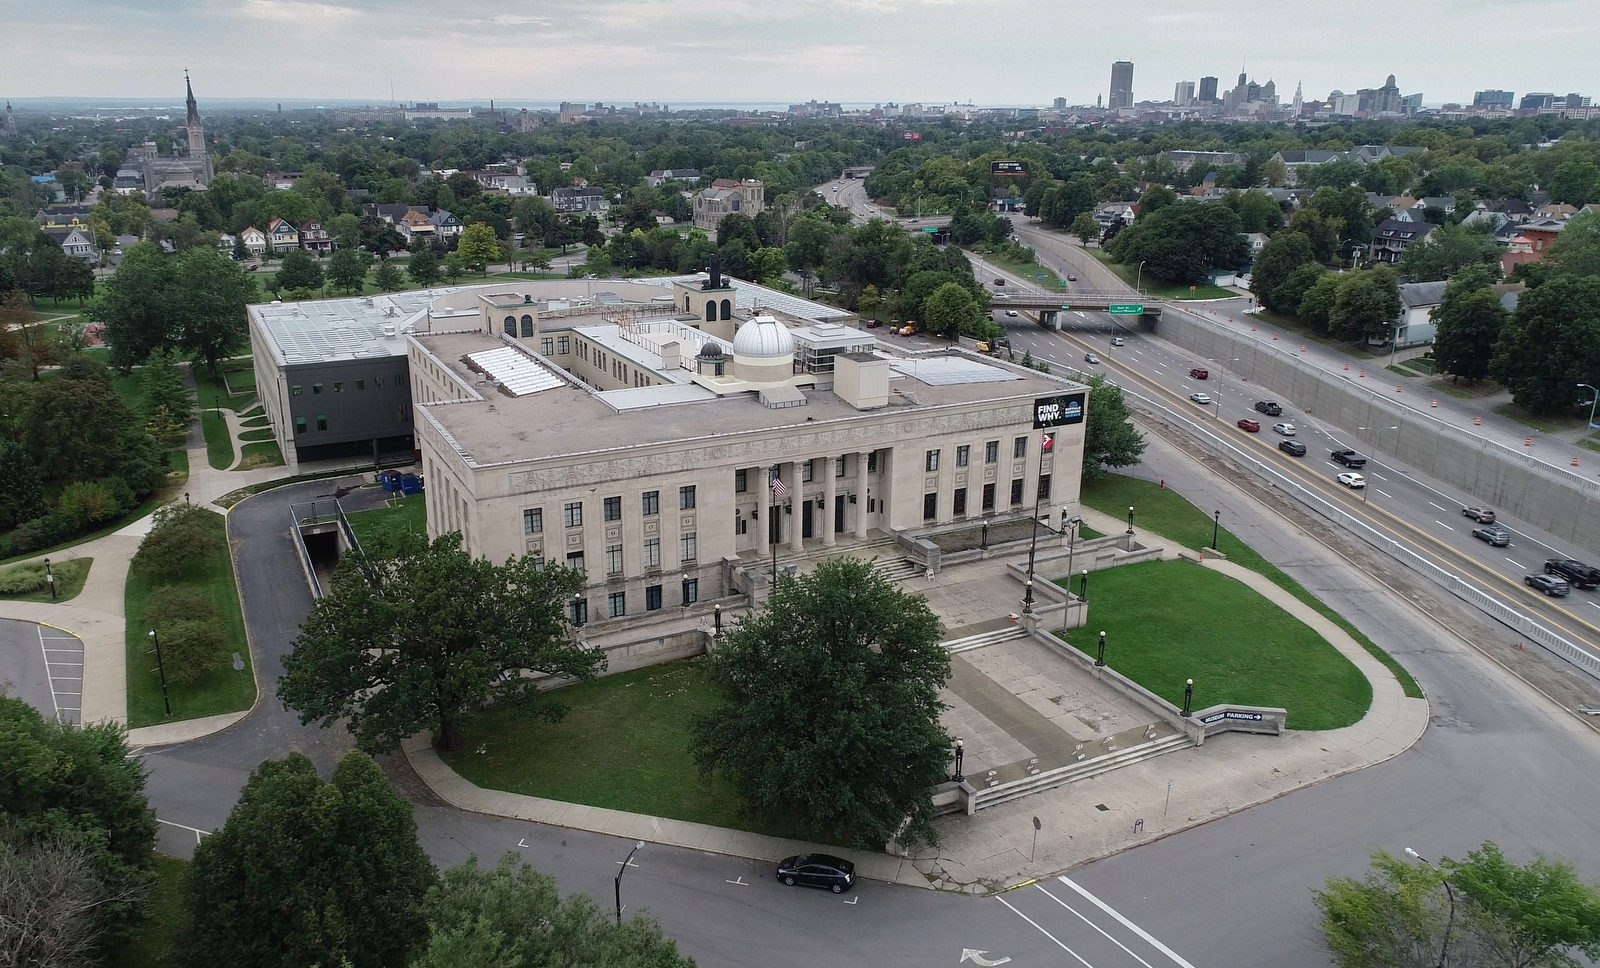 The Buffalo Museum of Science collection contains more than 700,000 specimens ranging across a broad range of sciences. Exhibits range from natural sciences and biodiversity to space exploration and everything in between, housed in a modern classical building that opened in 1929.